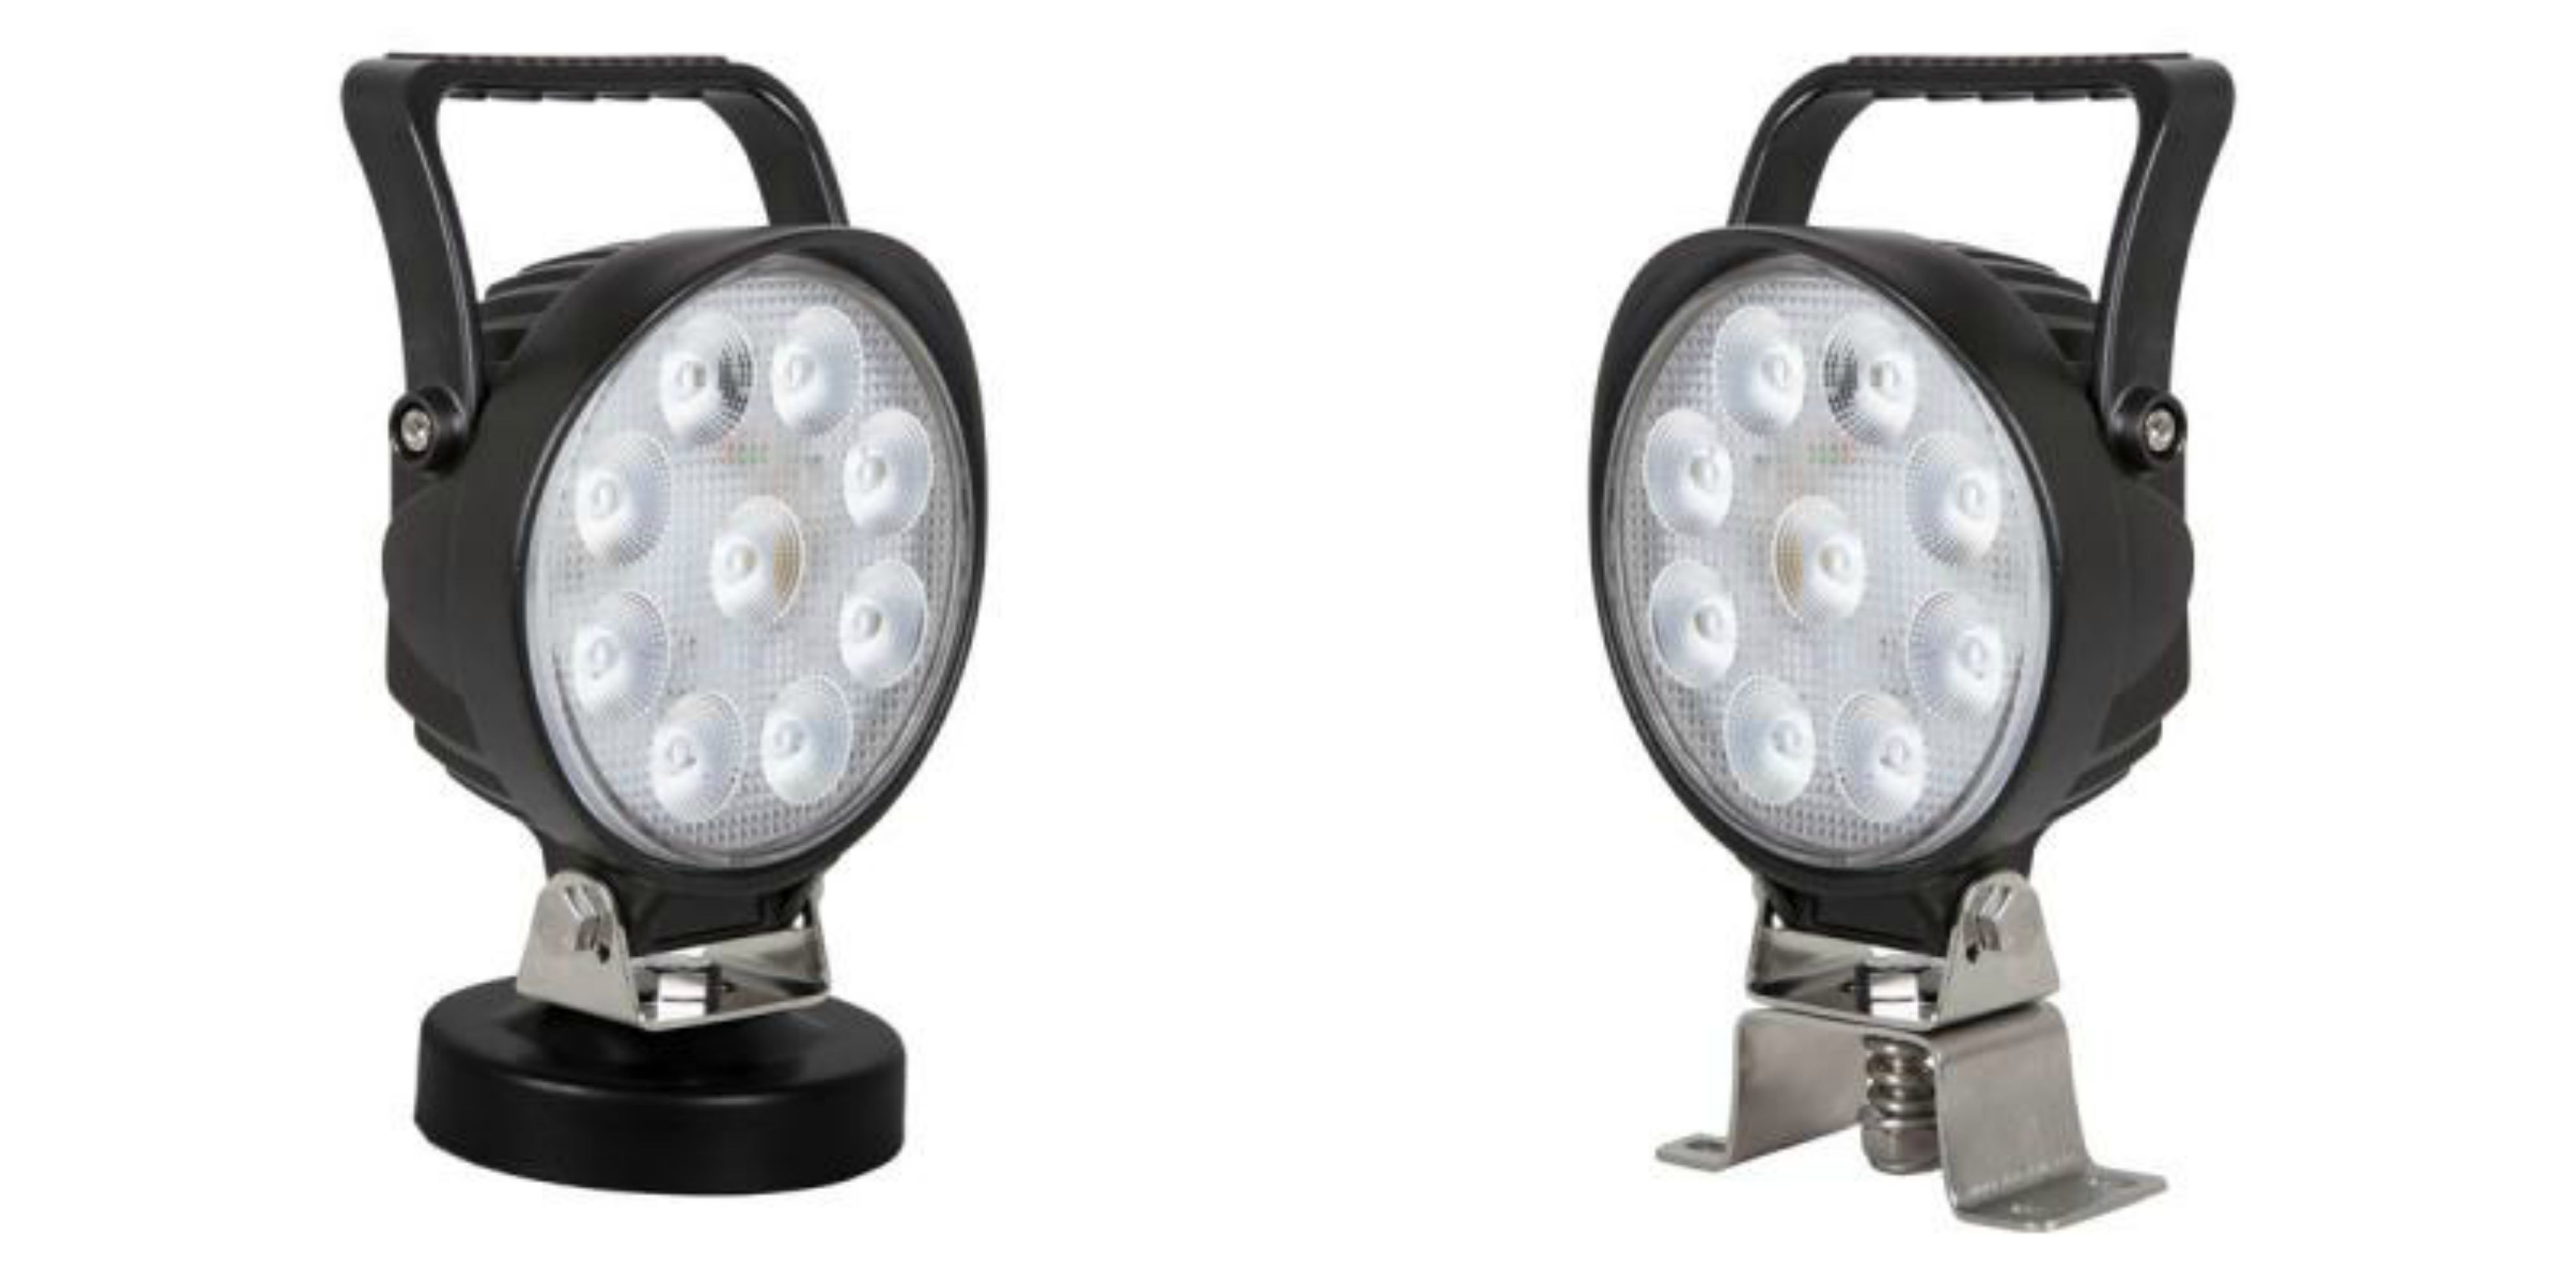 The New Mwl 36 Surface Mount The Mwl 37 Magnetic Mount Both With On Off Switch Work Lights Led Work Light Mounting